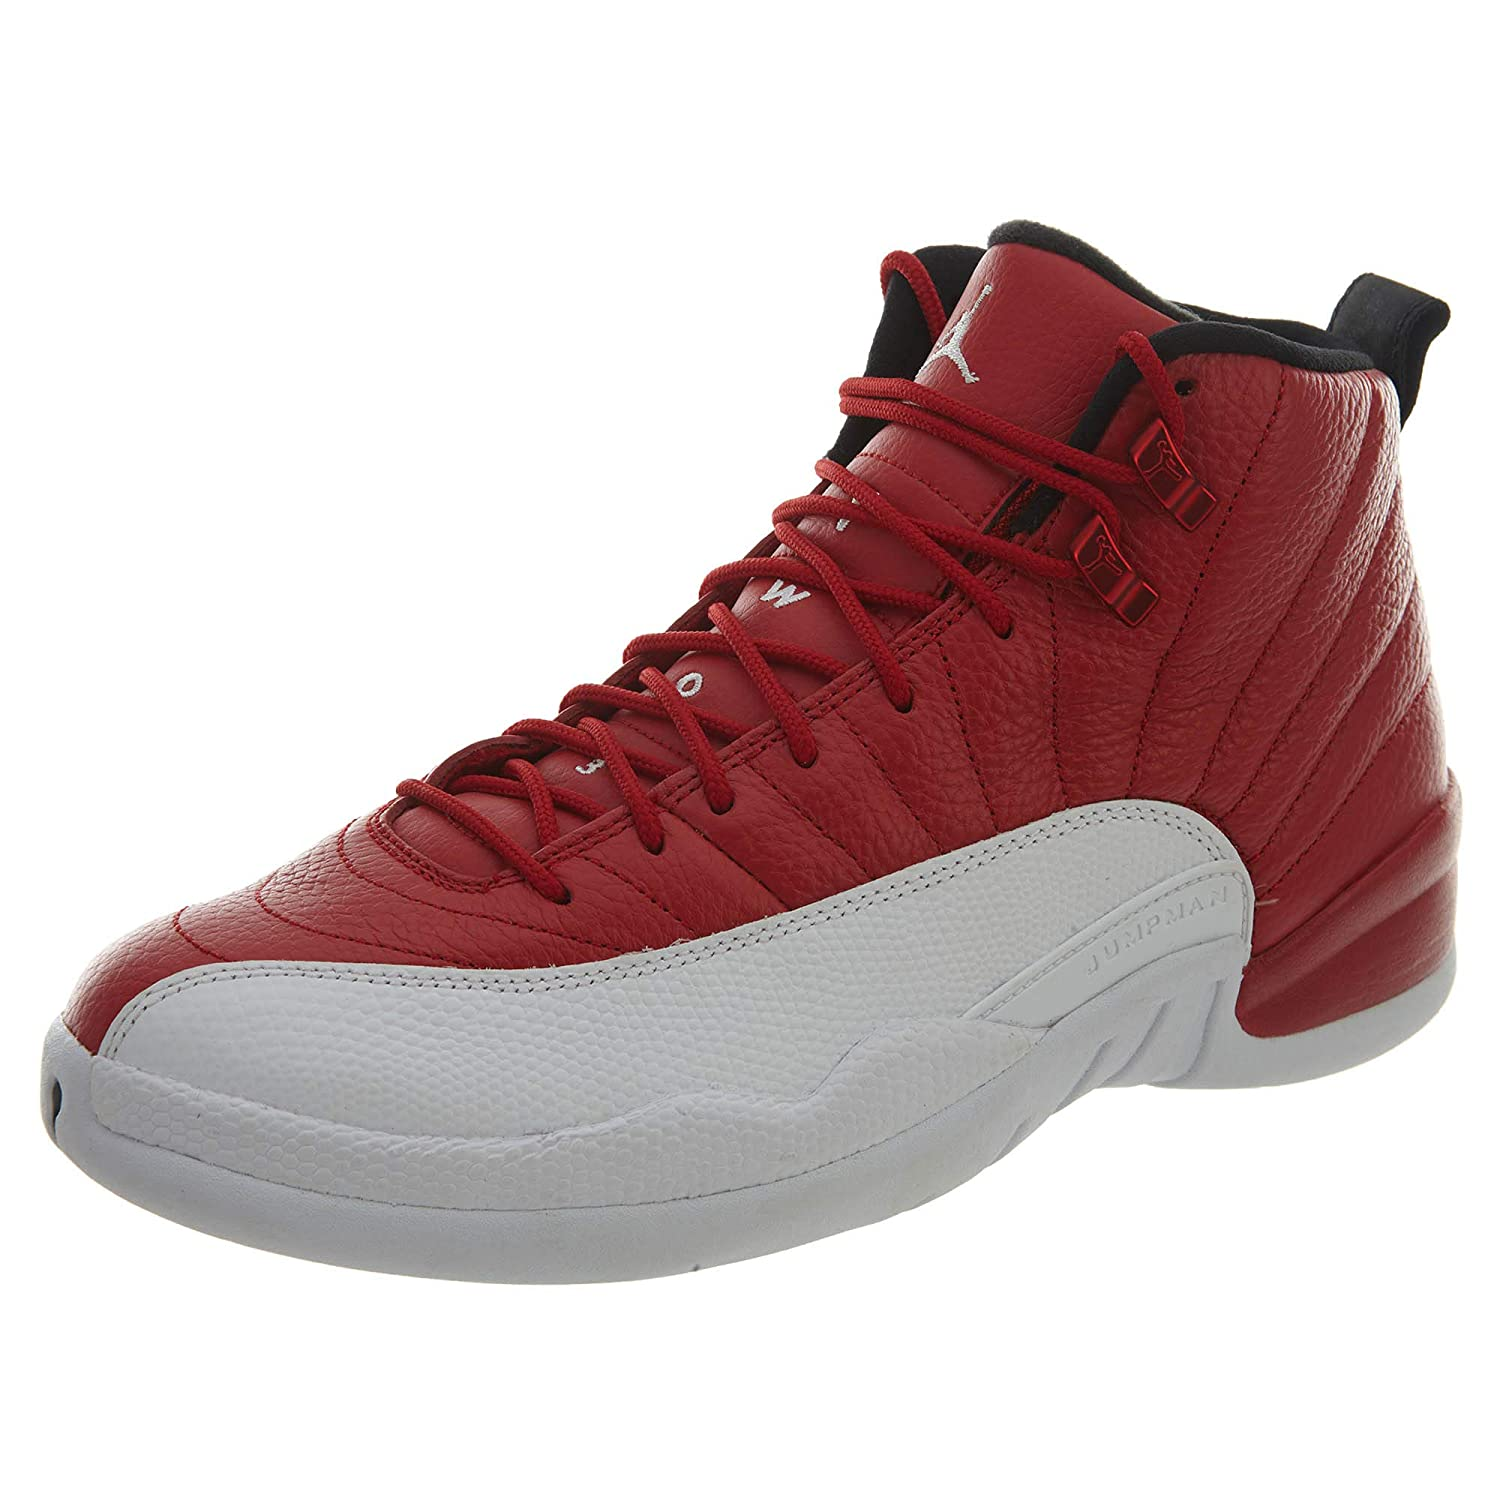 Nike Herren Air Jordan 12 Retro Basketballschuhe